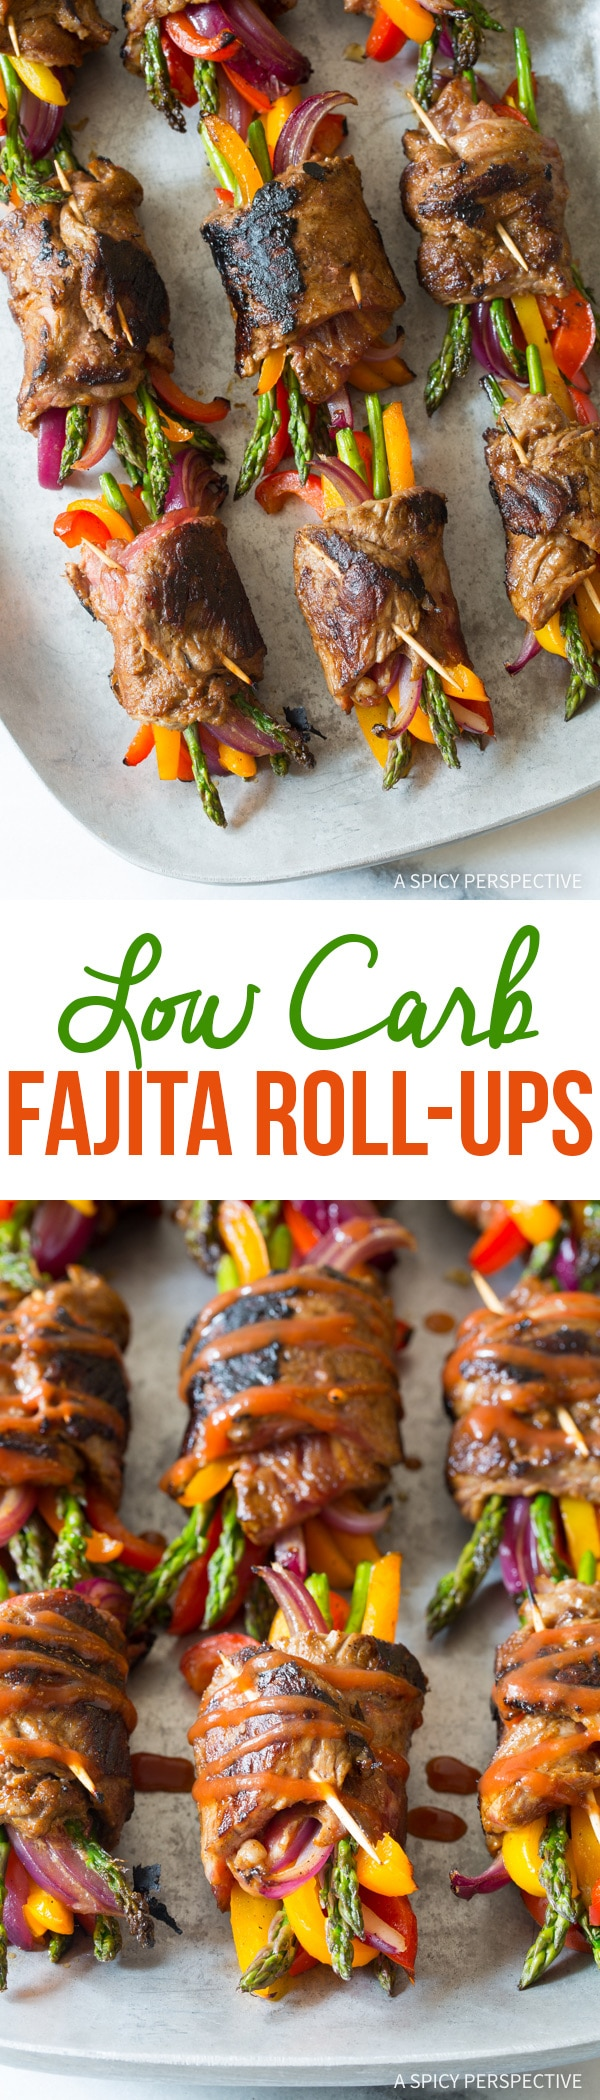 Zesty Low Carb Steak Fajita Roll-Ups #healthy